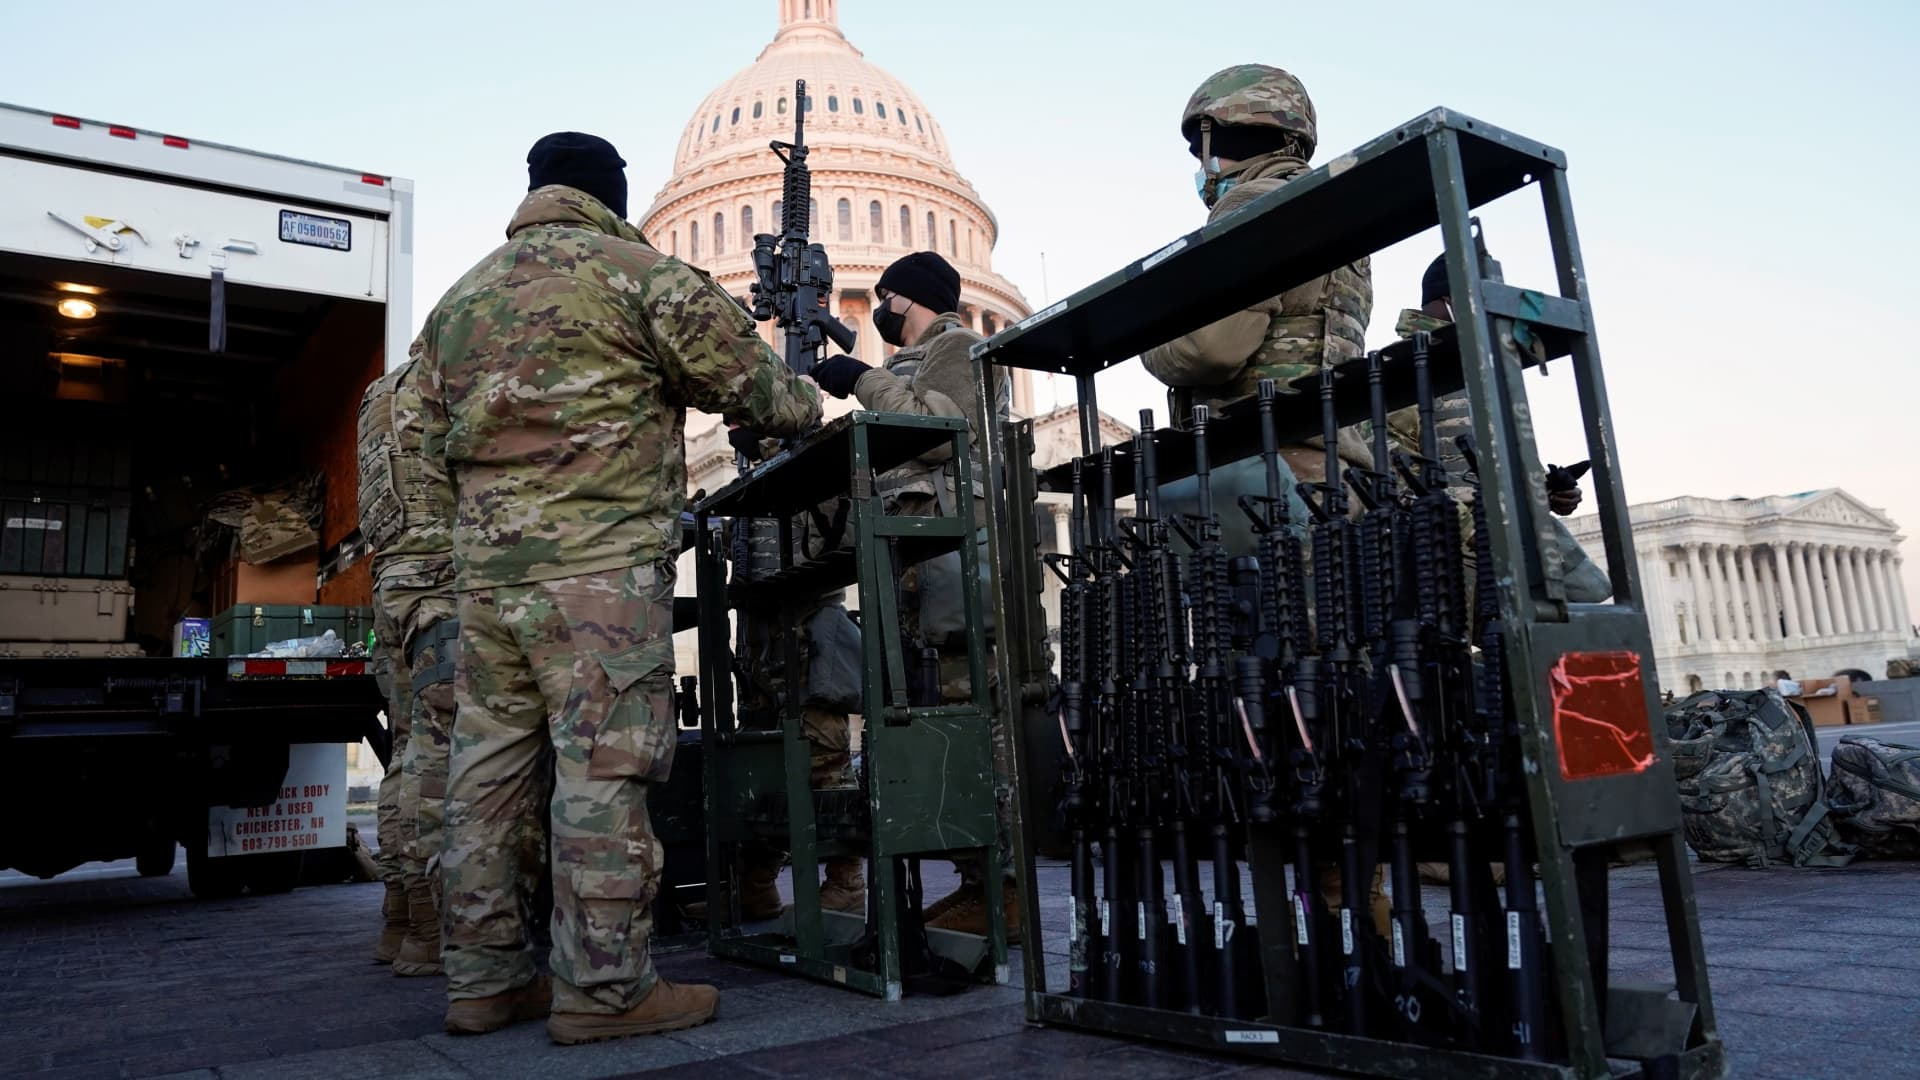 Members of the National Guard are given weapons before Democrats begin debating one article of impeachment against U.S. President Donald Trump at the U.S. Capitol, in Washington, U.S., January 13, 2021.